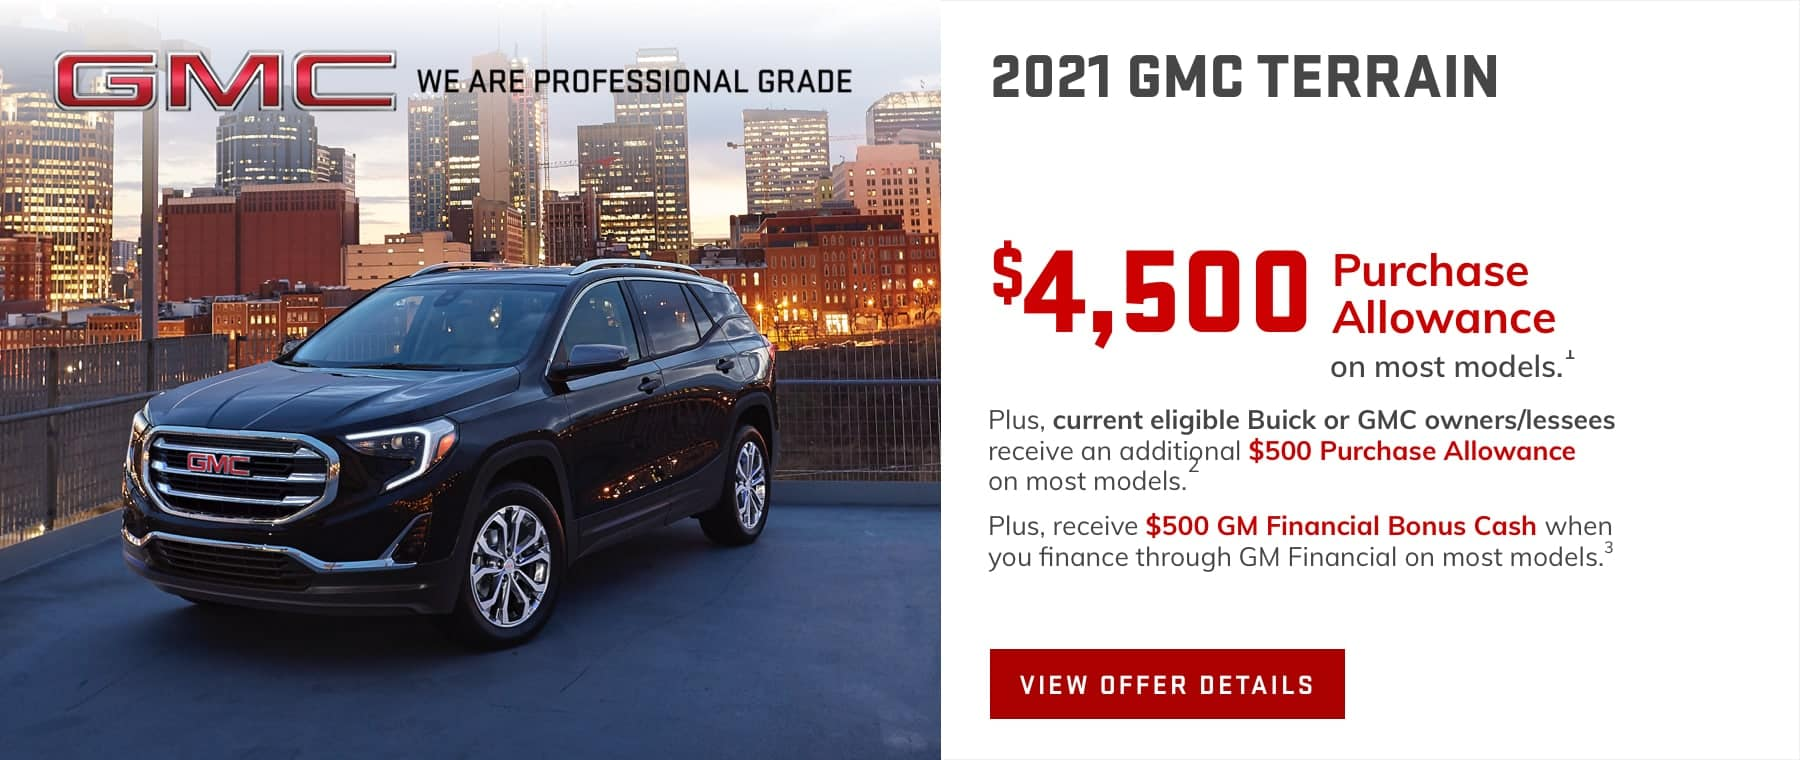 $4,500 Purchase Allowance on most models.1 Plus, current eligible Buick or GMC owners/lessees receive an additional $500 Purchase Allowance.2 Plus, receive $500 GM Financial Bonus Cash when you finance through GM Financial on most models.3